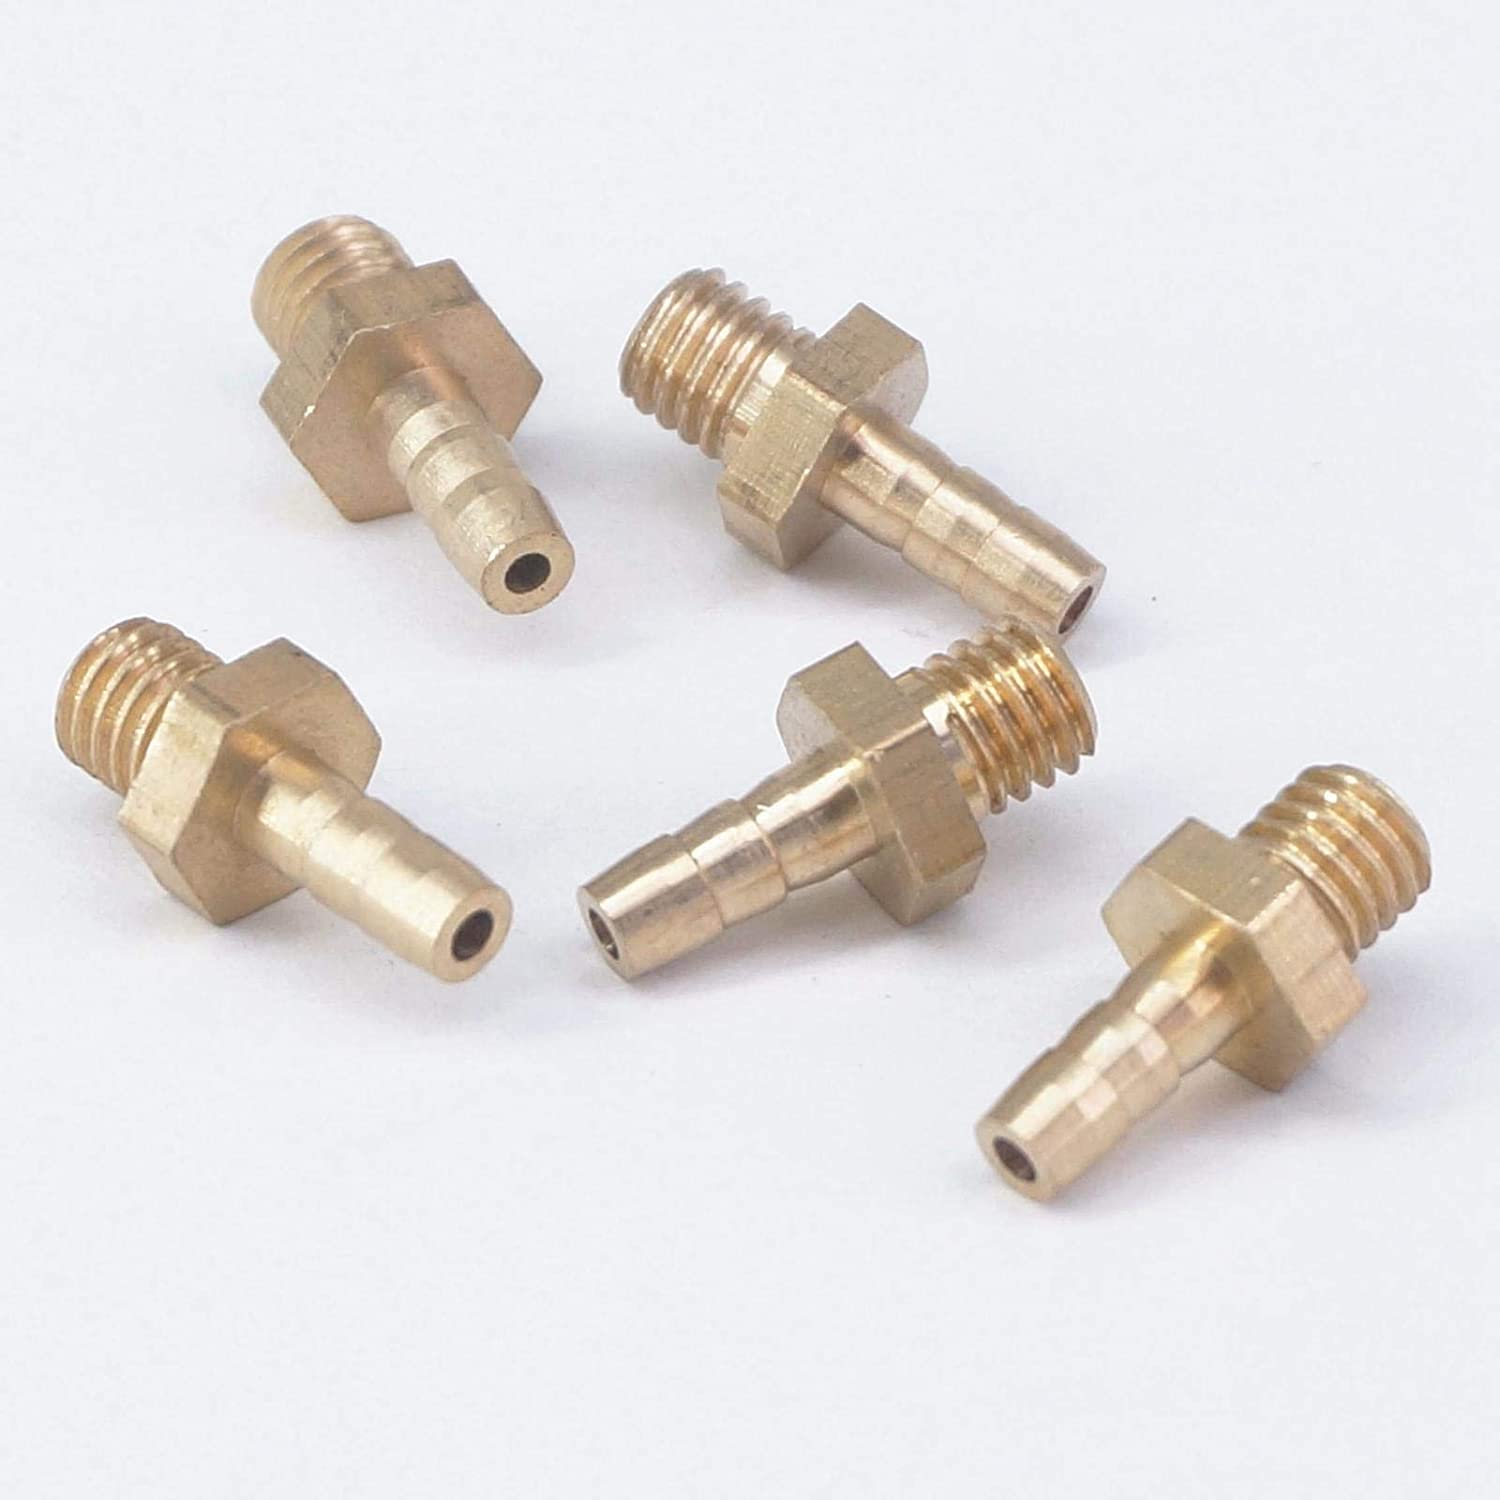 Maslin LOT 5 Hose Barb I//D 3mm x M5 Metric Male Thread Brass coupler Splicer Connector fitting for Fuel Gas Water